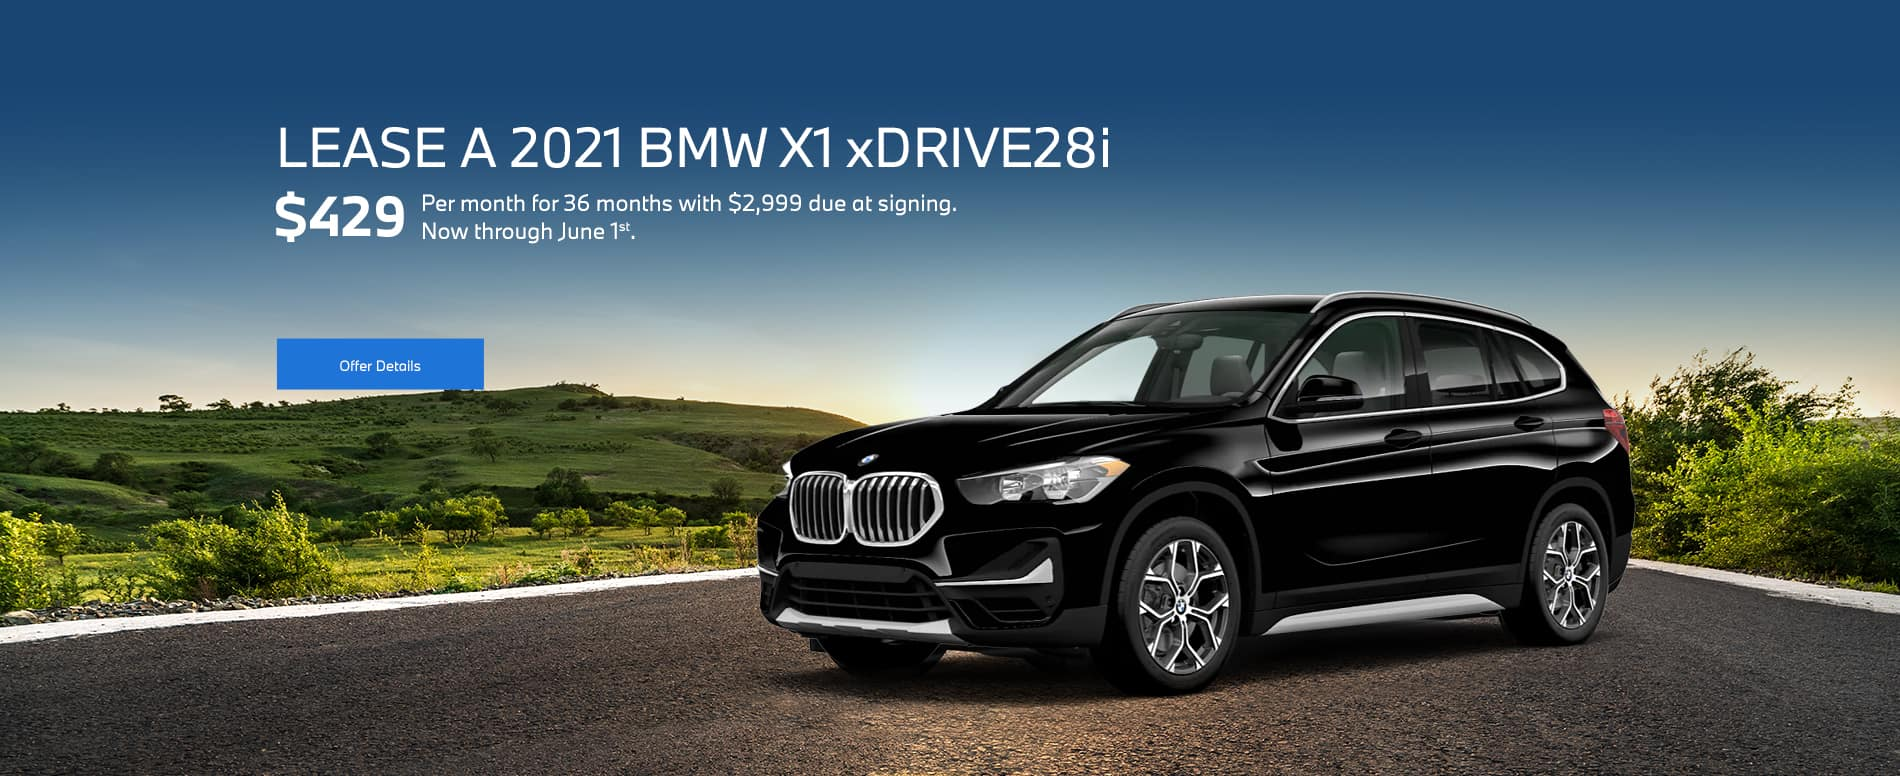 A new black 2021 BMW X1 leasing for $429 per month for 36 months with $2,999 due at signing